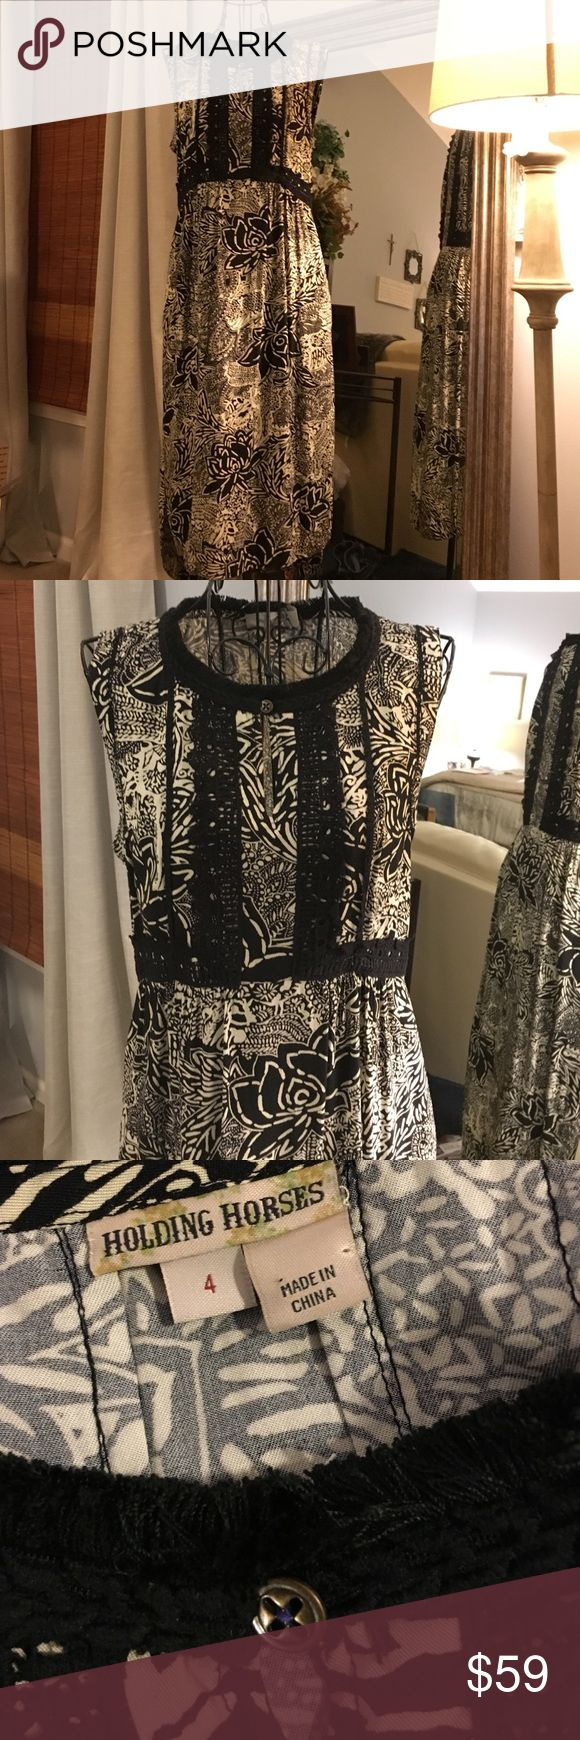 """Anthropologie holding horses dress Anthropology dress by holding horses. Size 4. Beautiful detailing on the empire styled top. 17 inch bust high low hem 40"""" in front shoulder to hem Anthropologie Dresses Midi"""